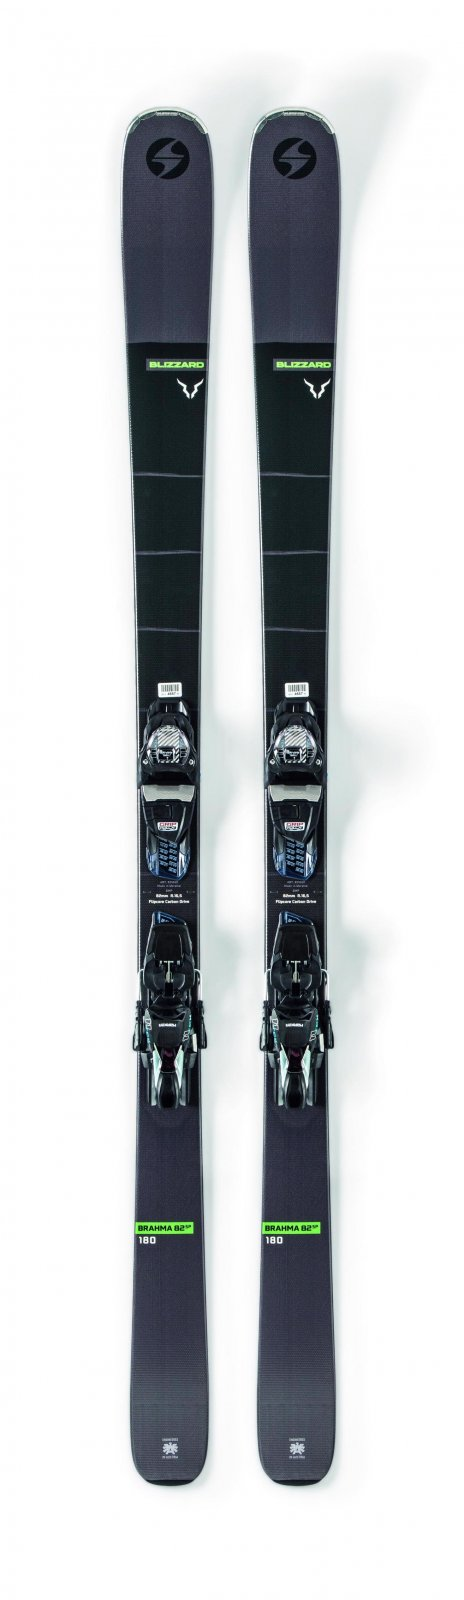 Blizzard Brahma 82 SP 180cm Skis + TCX 11 Demo 90 Bindings 2020